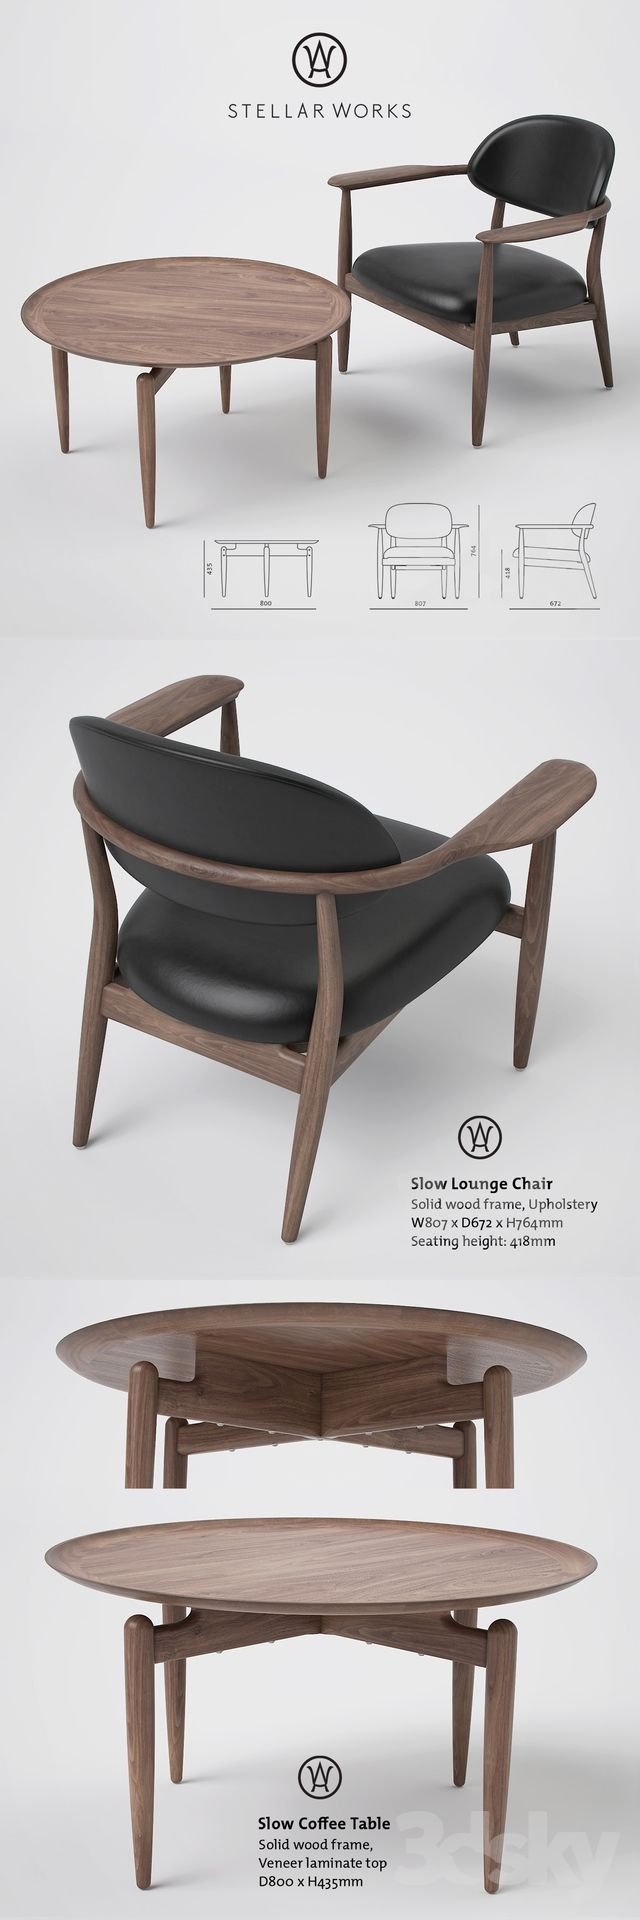 Admirable Stellar Works Slow Lounge Chair And Coffee Table 3Dsky Caraccident5 Cool Chair Designs And Ideas Caraccident5Info